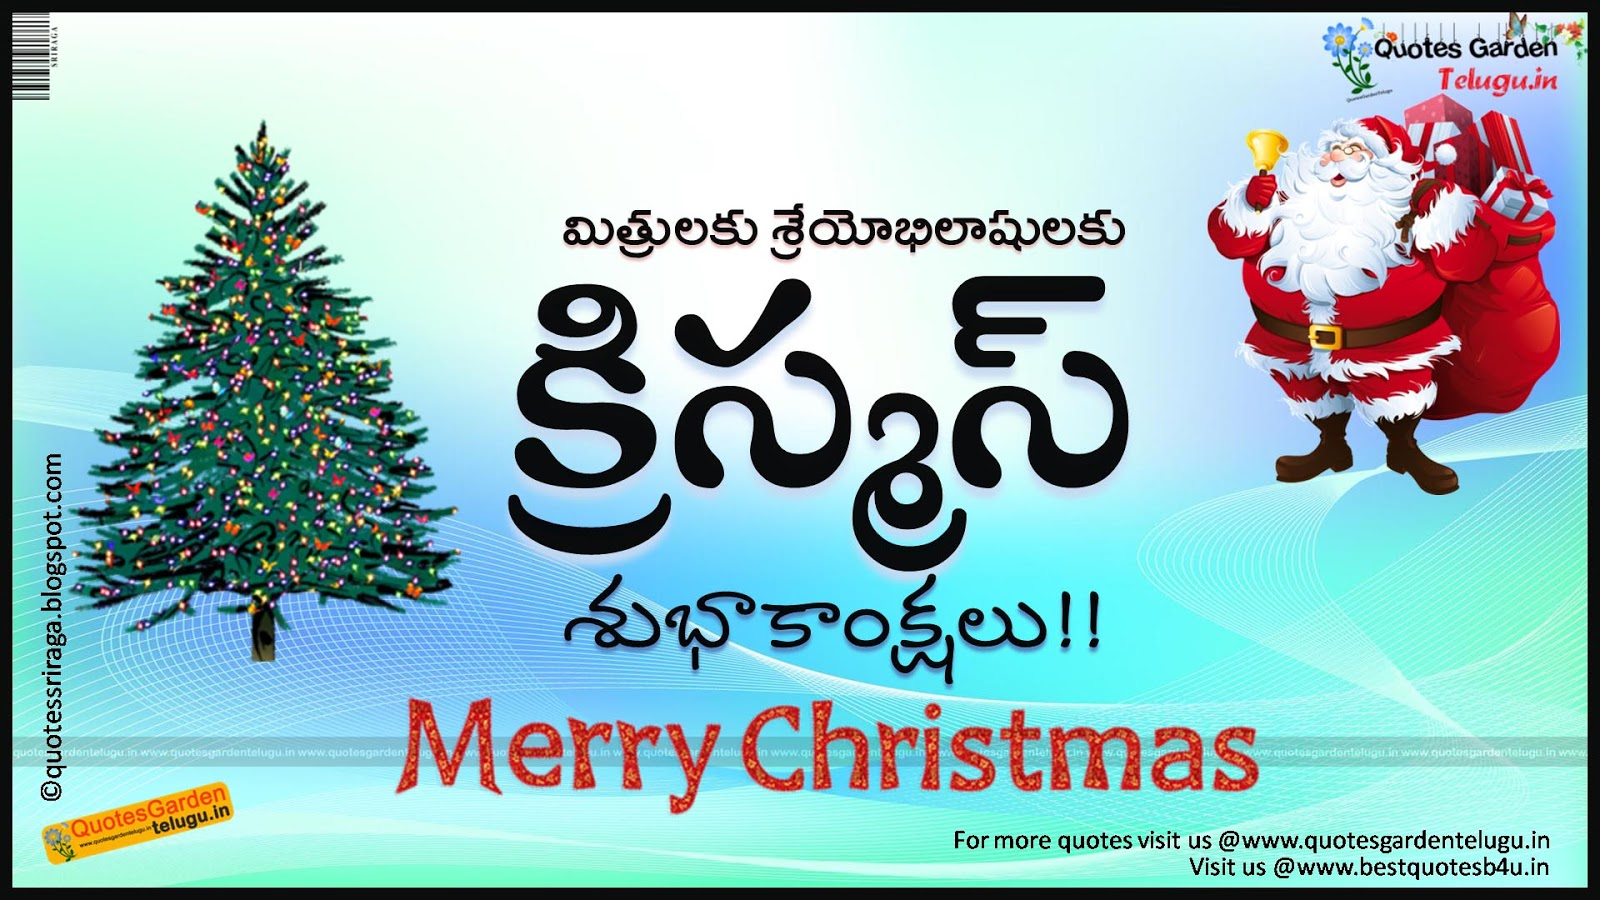 Telugu christmas greeting cards wallpapers quotes garden telugu telugu language christmas holiday e card greetings online with nice images latest telugu new 2014 christmas holiday greetings with christmas photos kristyandbryce Gallery